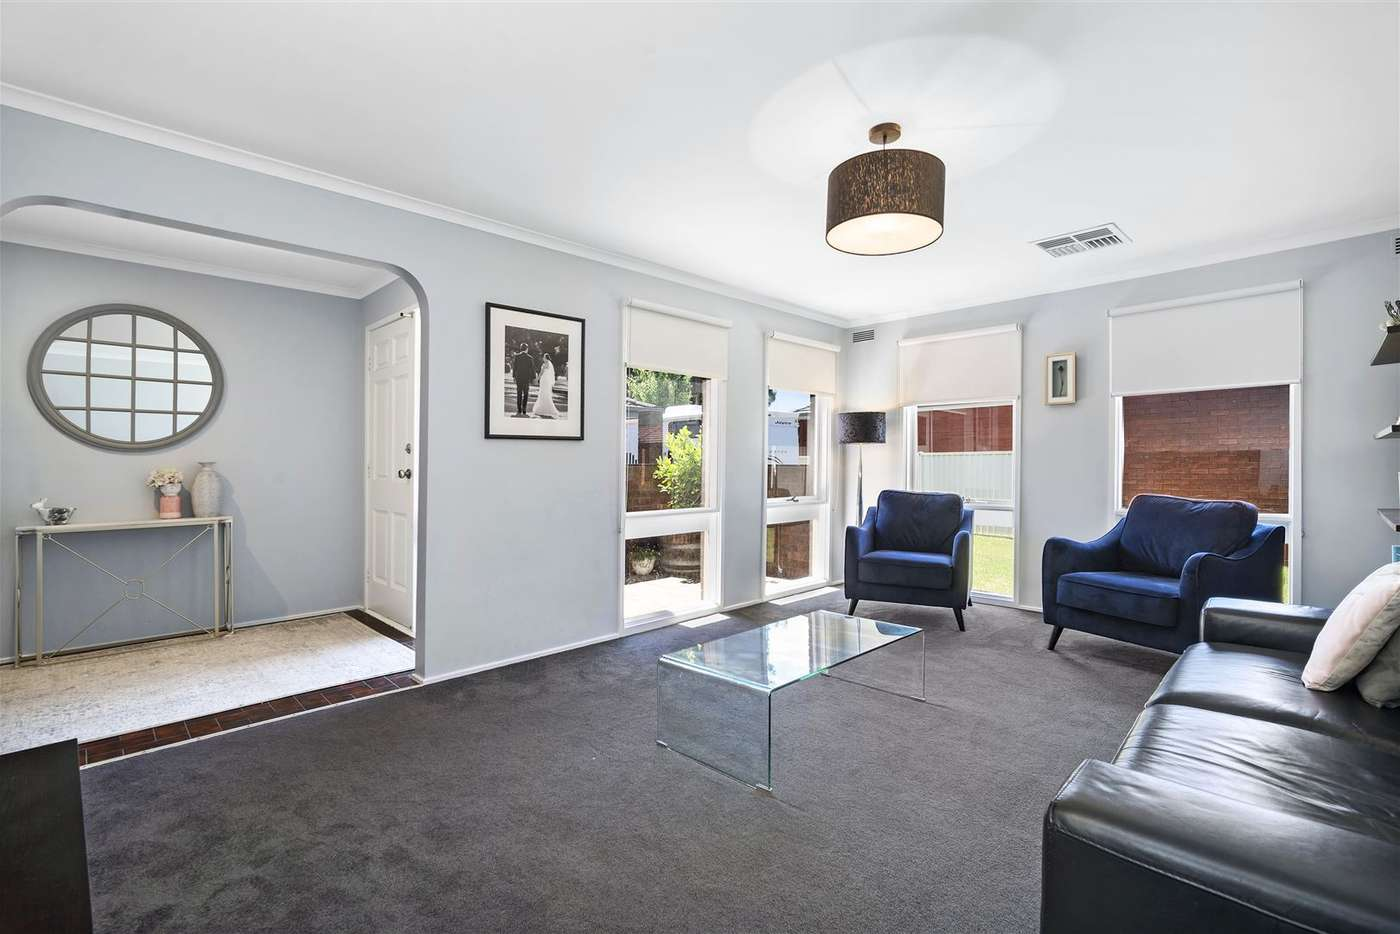 Sixth view of Homely house listing, 1 Caroline Street, Alfredton VIC 3350